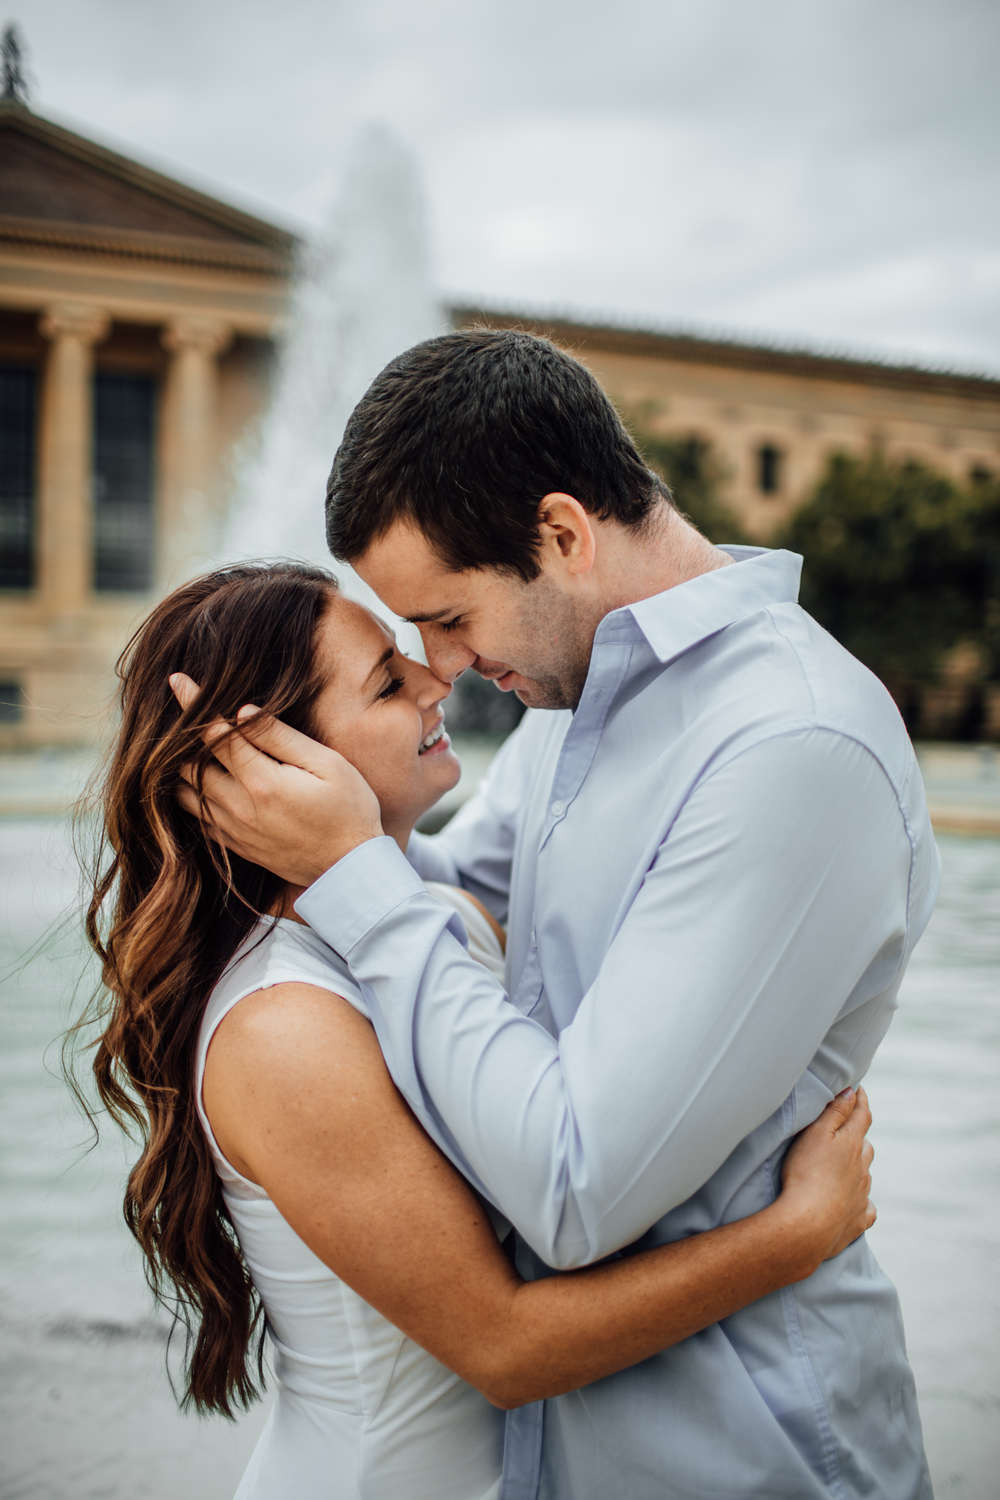 BRITTANYandKEVIN-Engagement2015 (88 of 115).jpg